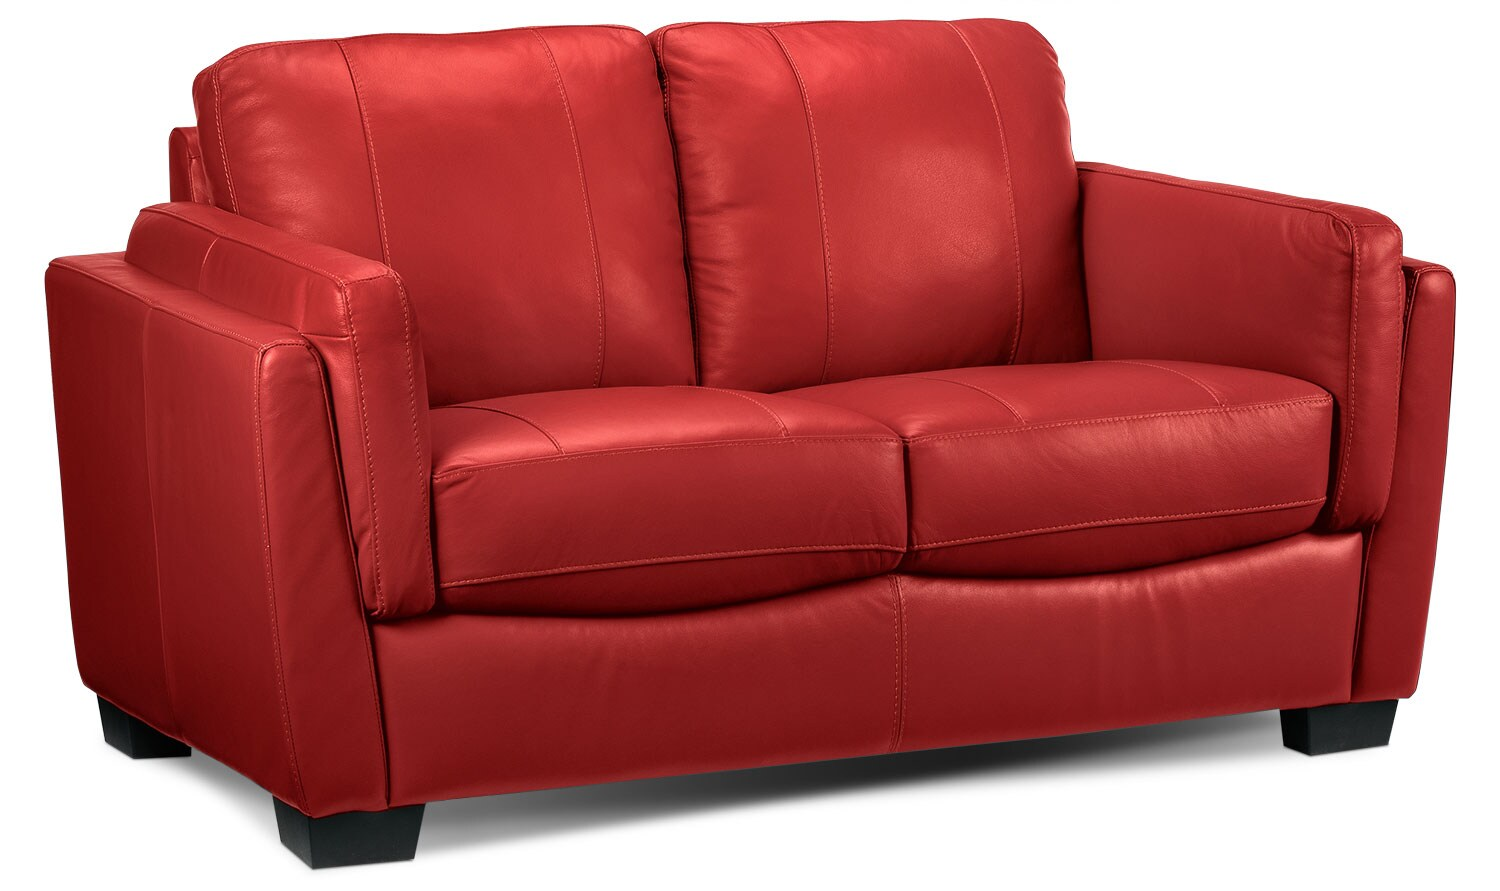 Living Room Furniture - Isadore Loveseat - Red